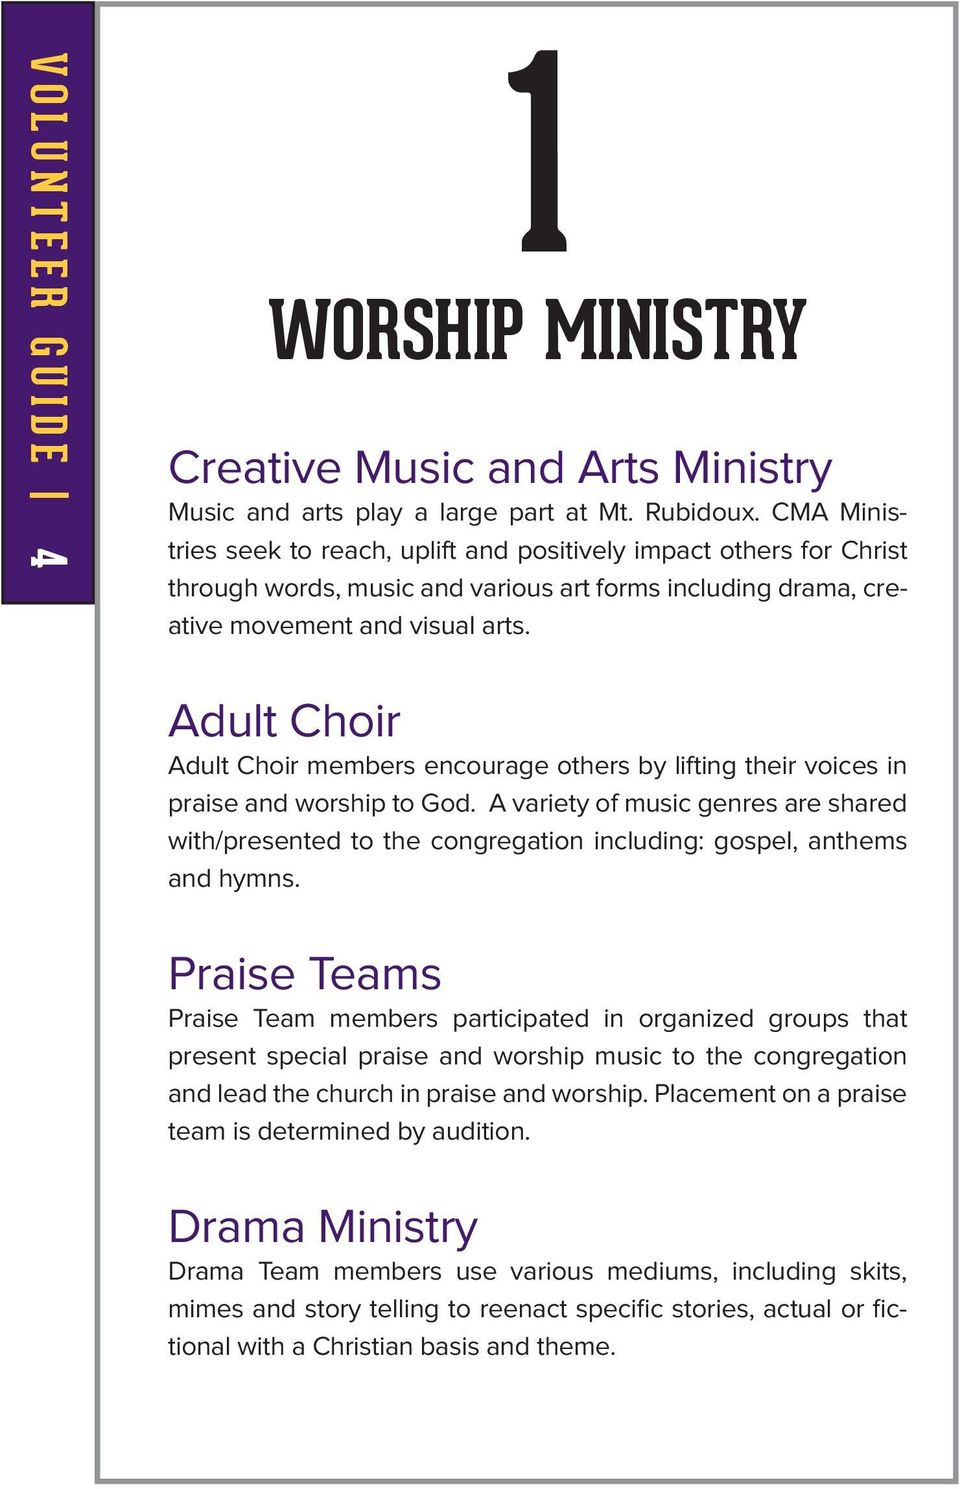 Adult Choir Adult Choir members encourage others by lifting their voices in praise and worship to God.